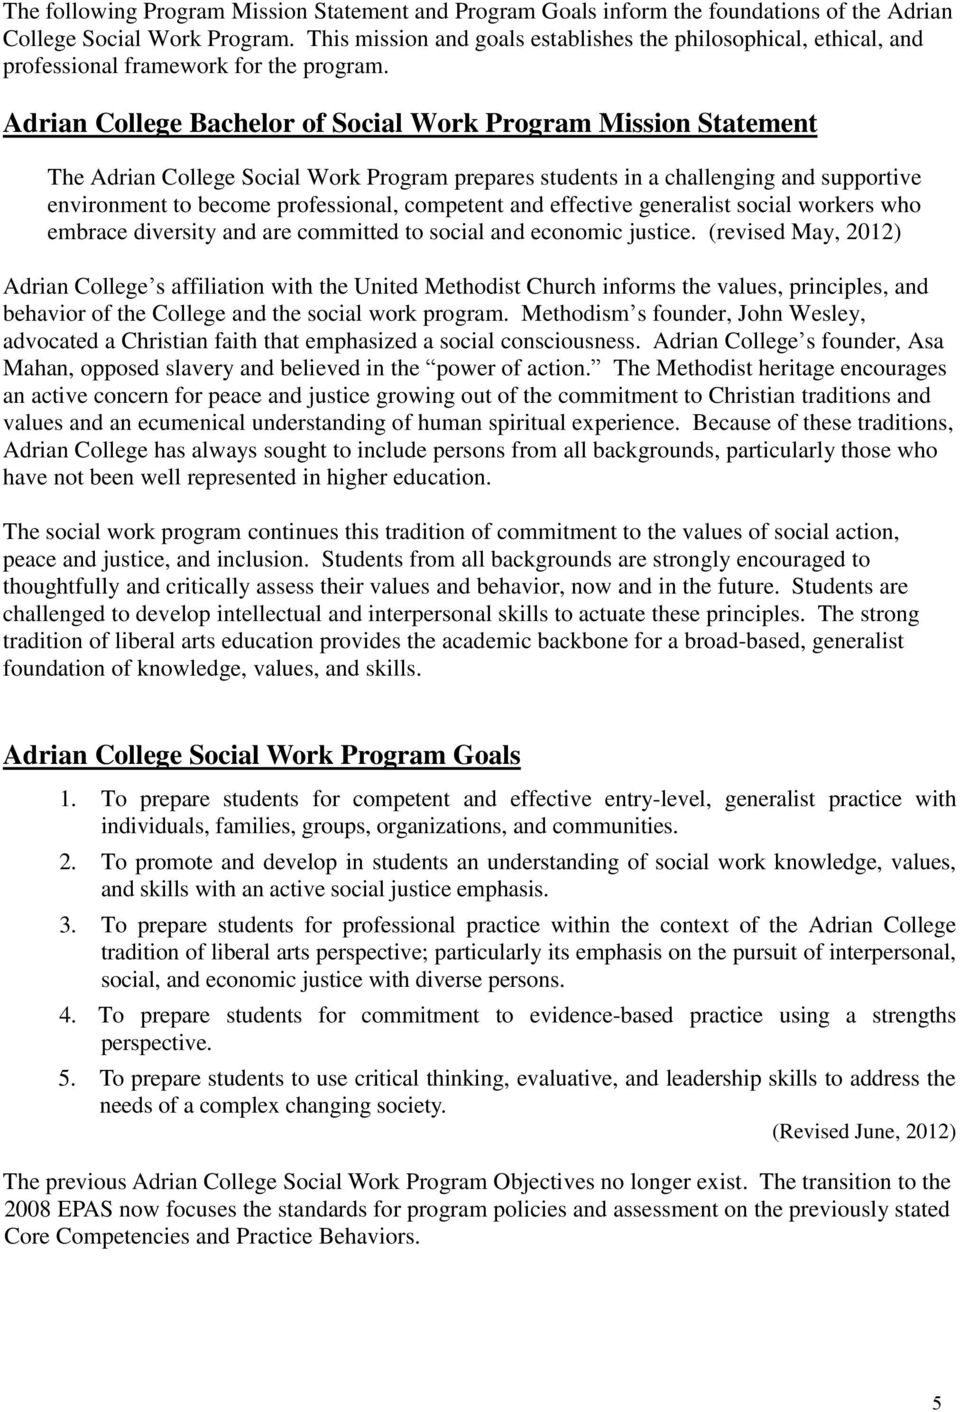 Adrian College Bachelor of Social Work Program Mission Statement The Adrian College Social Work Program prepares students in a challenging and supportive environment to become professional, competent